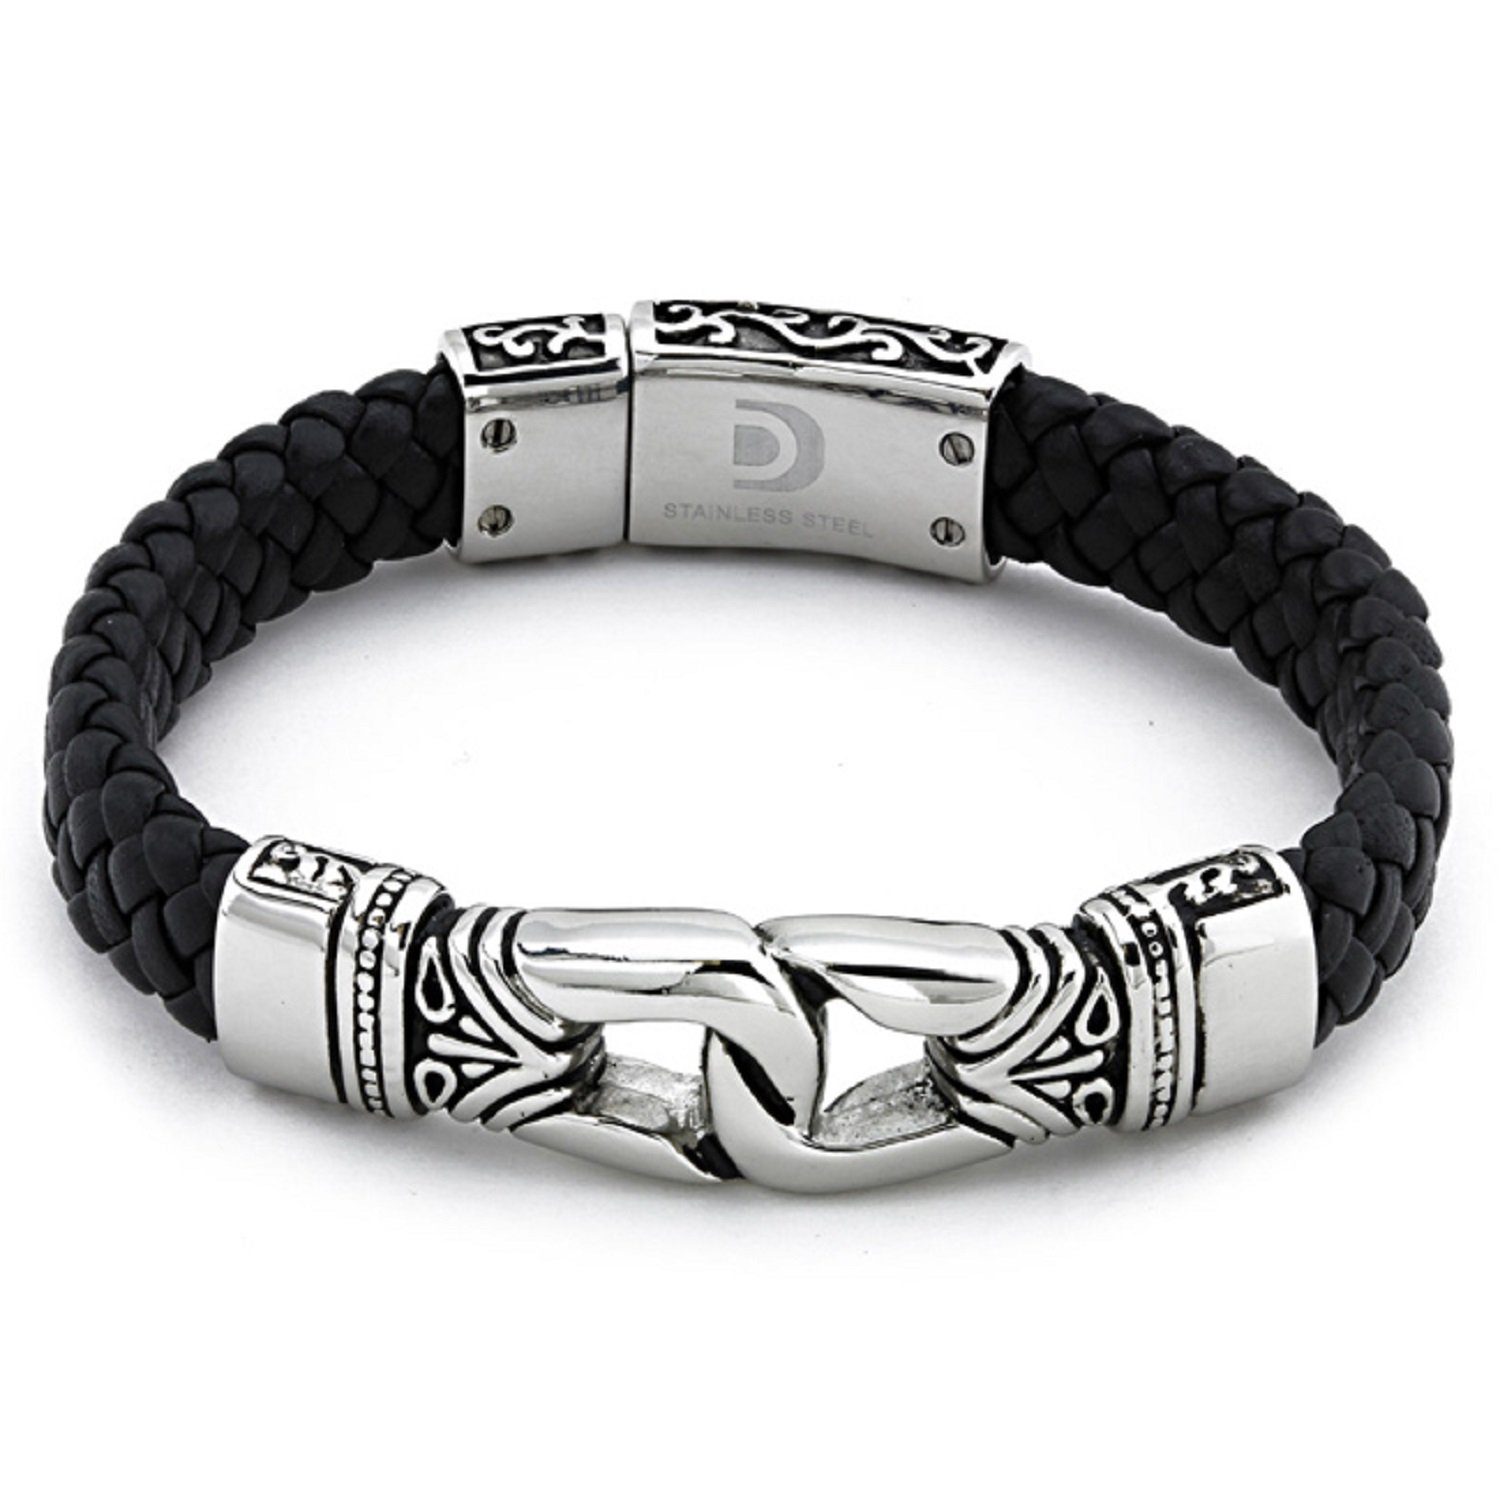 Antique Braided Black Leather Men's Bracelet Stainless Steel by AX Jewelry (Image #1)